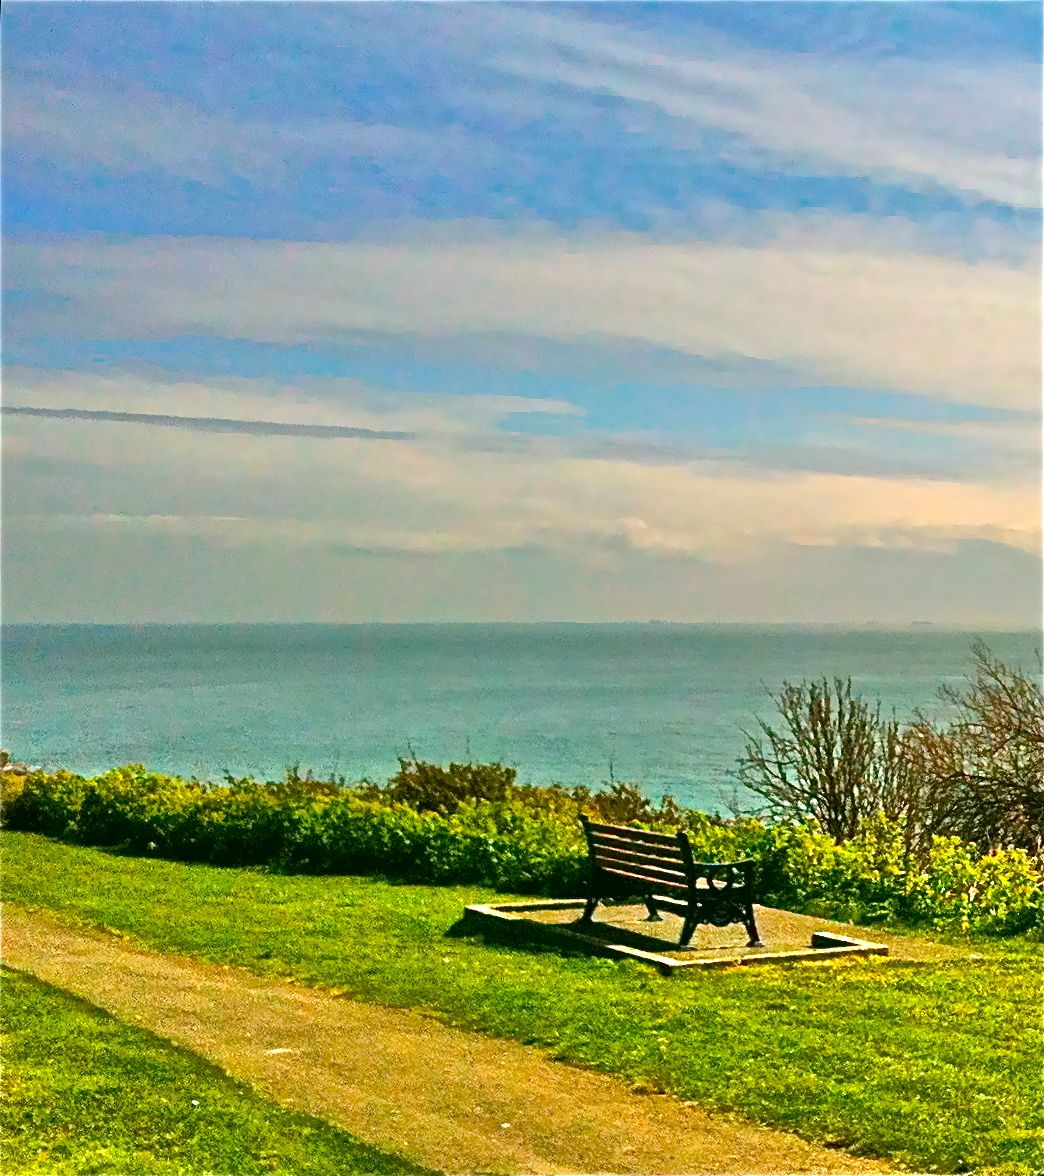 Folkestone yesterday, I jacked up the 'saturation button thingy' and this is what I got :)